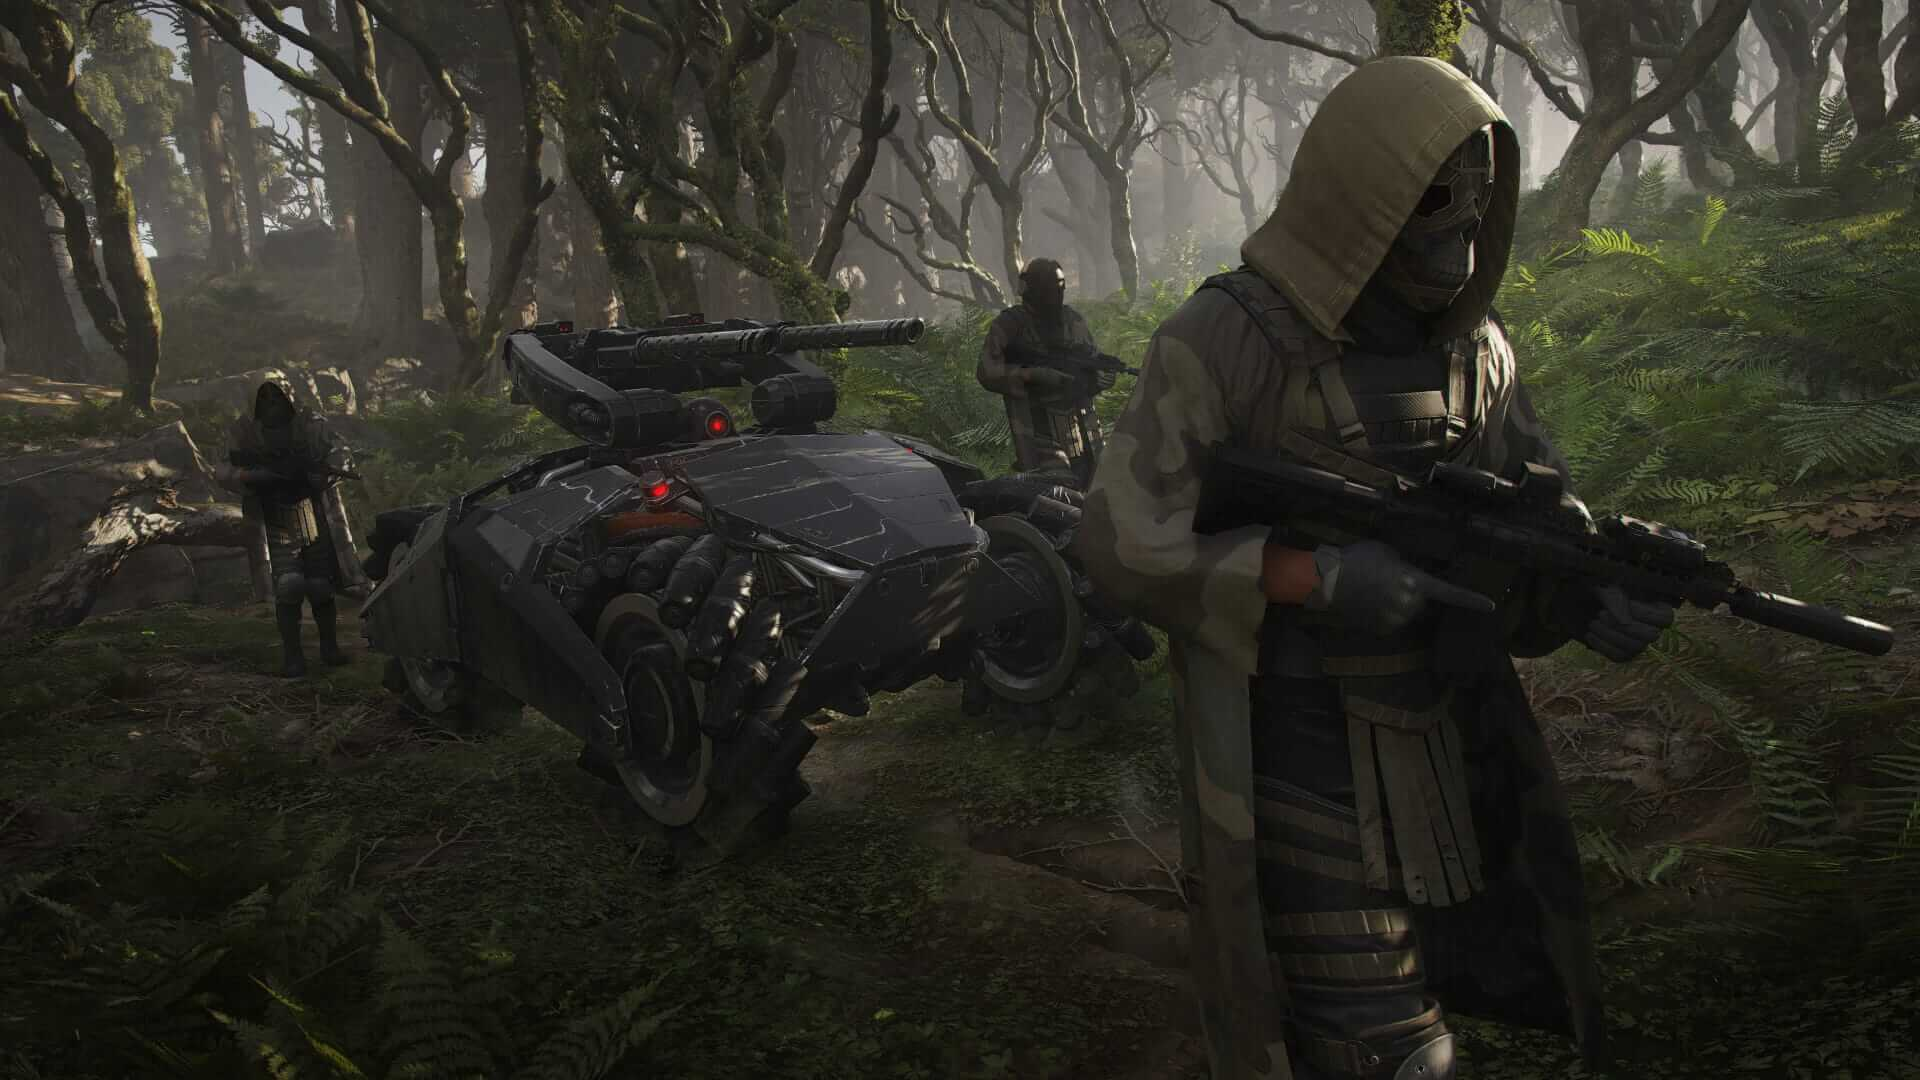 Jogos: Tom Clancy's Ghost Recon Breakpoint anuncia free trial e friend pass